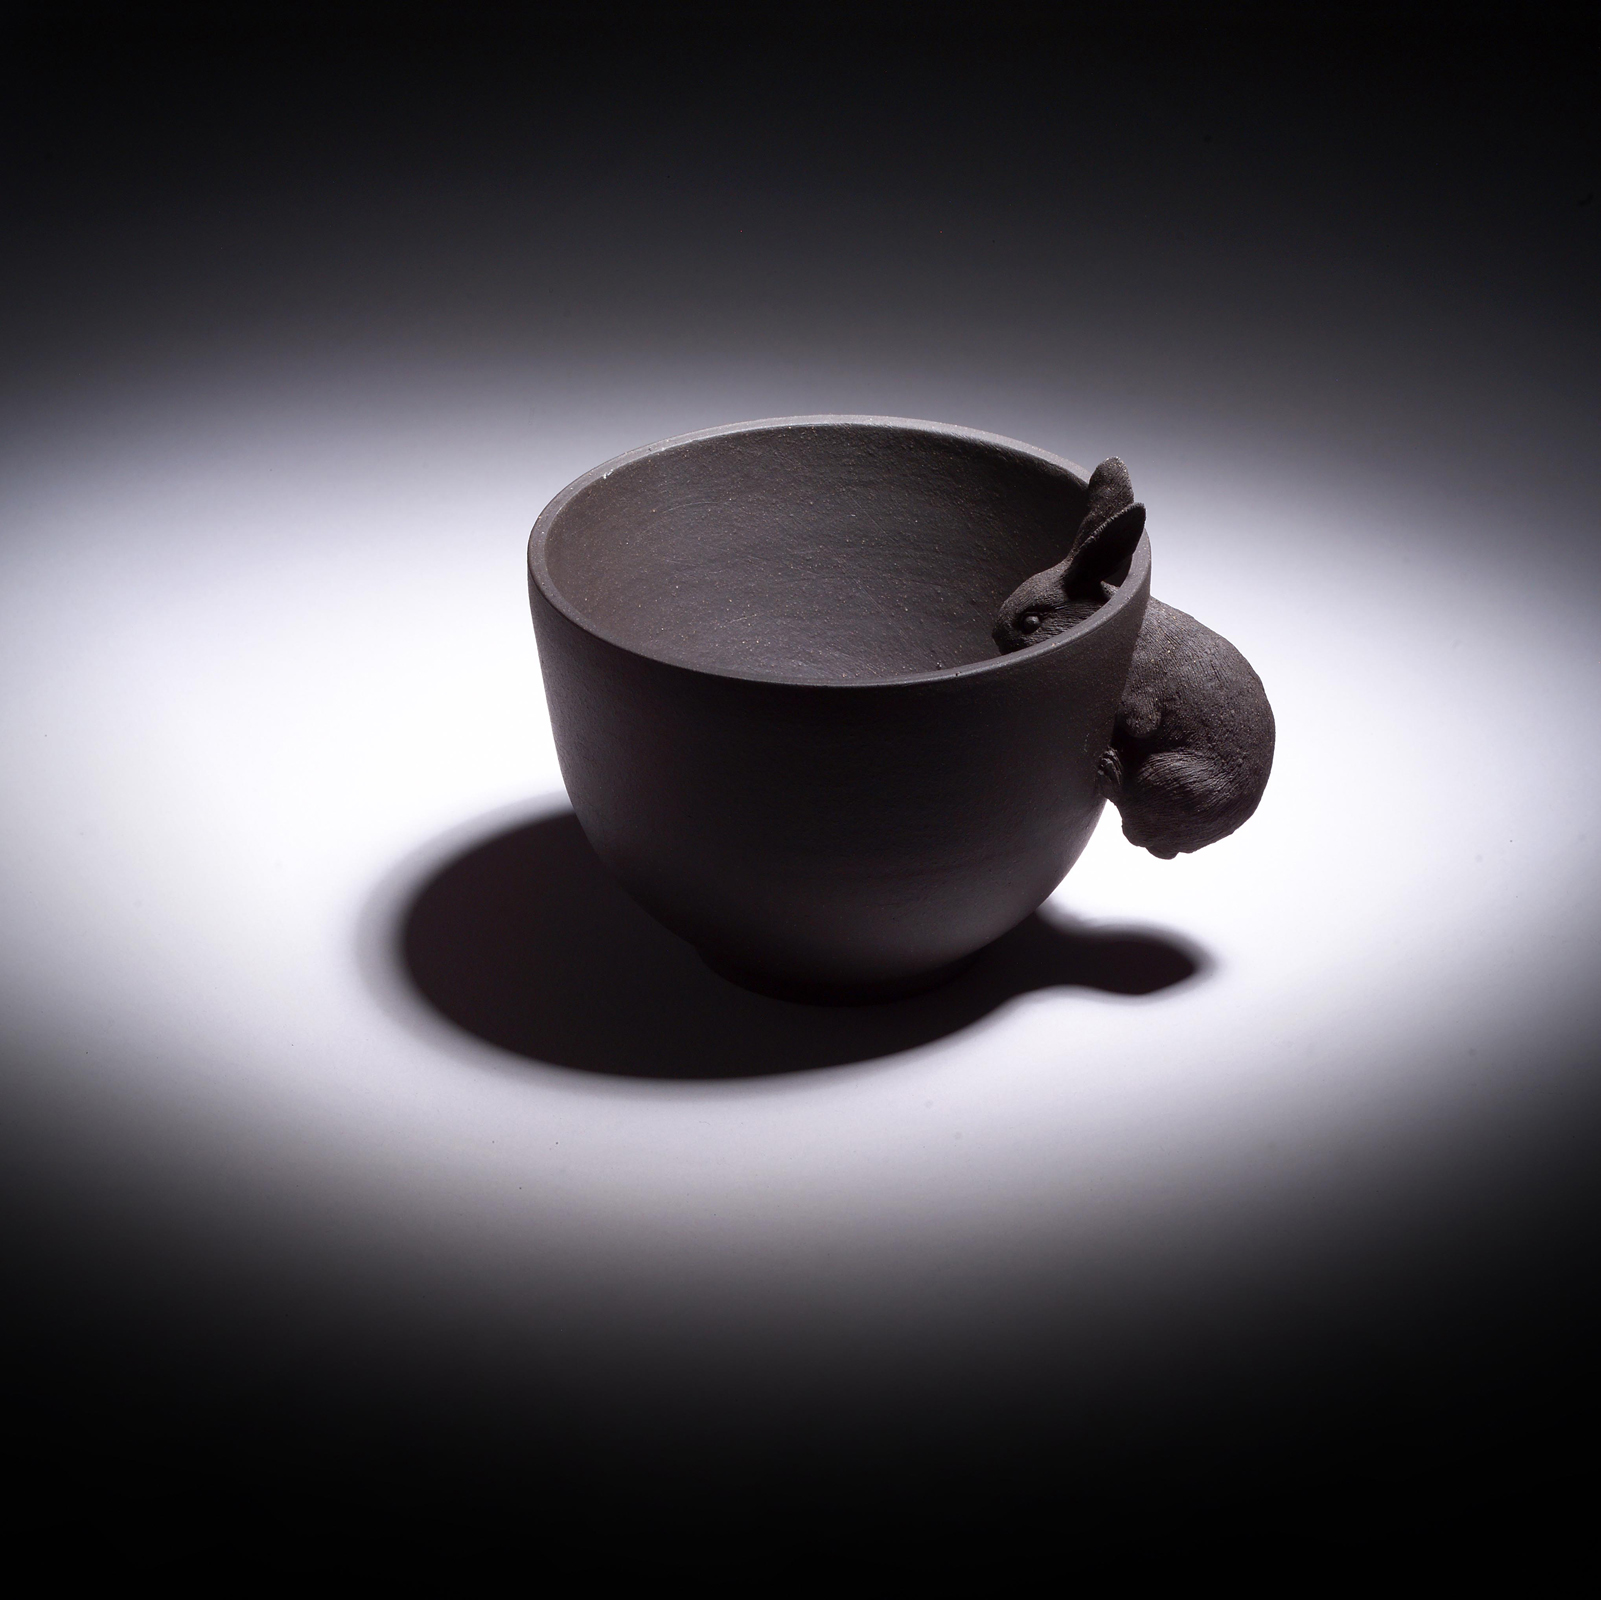 Moon Rabbit-Cup. Black clay. Designer: Hsiao-Ying Lin, Craft Maker: Jung-Ching Tang.